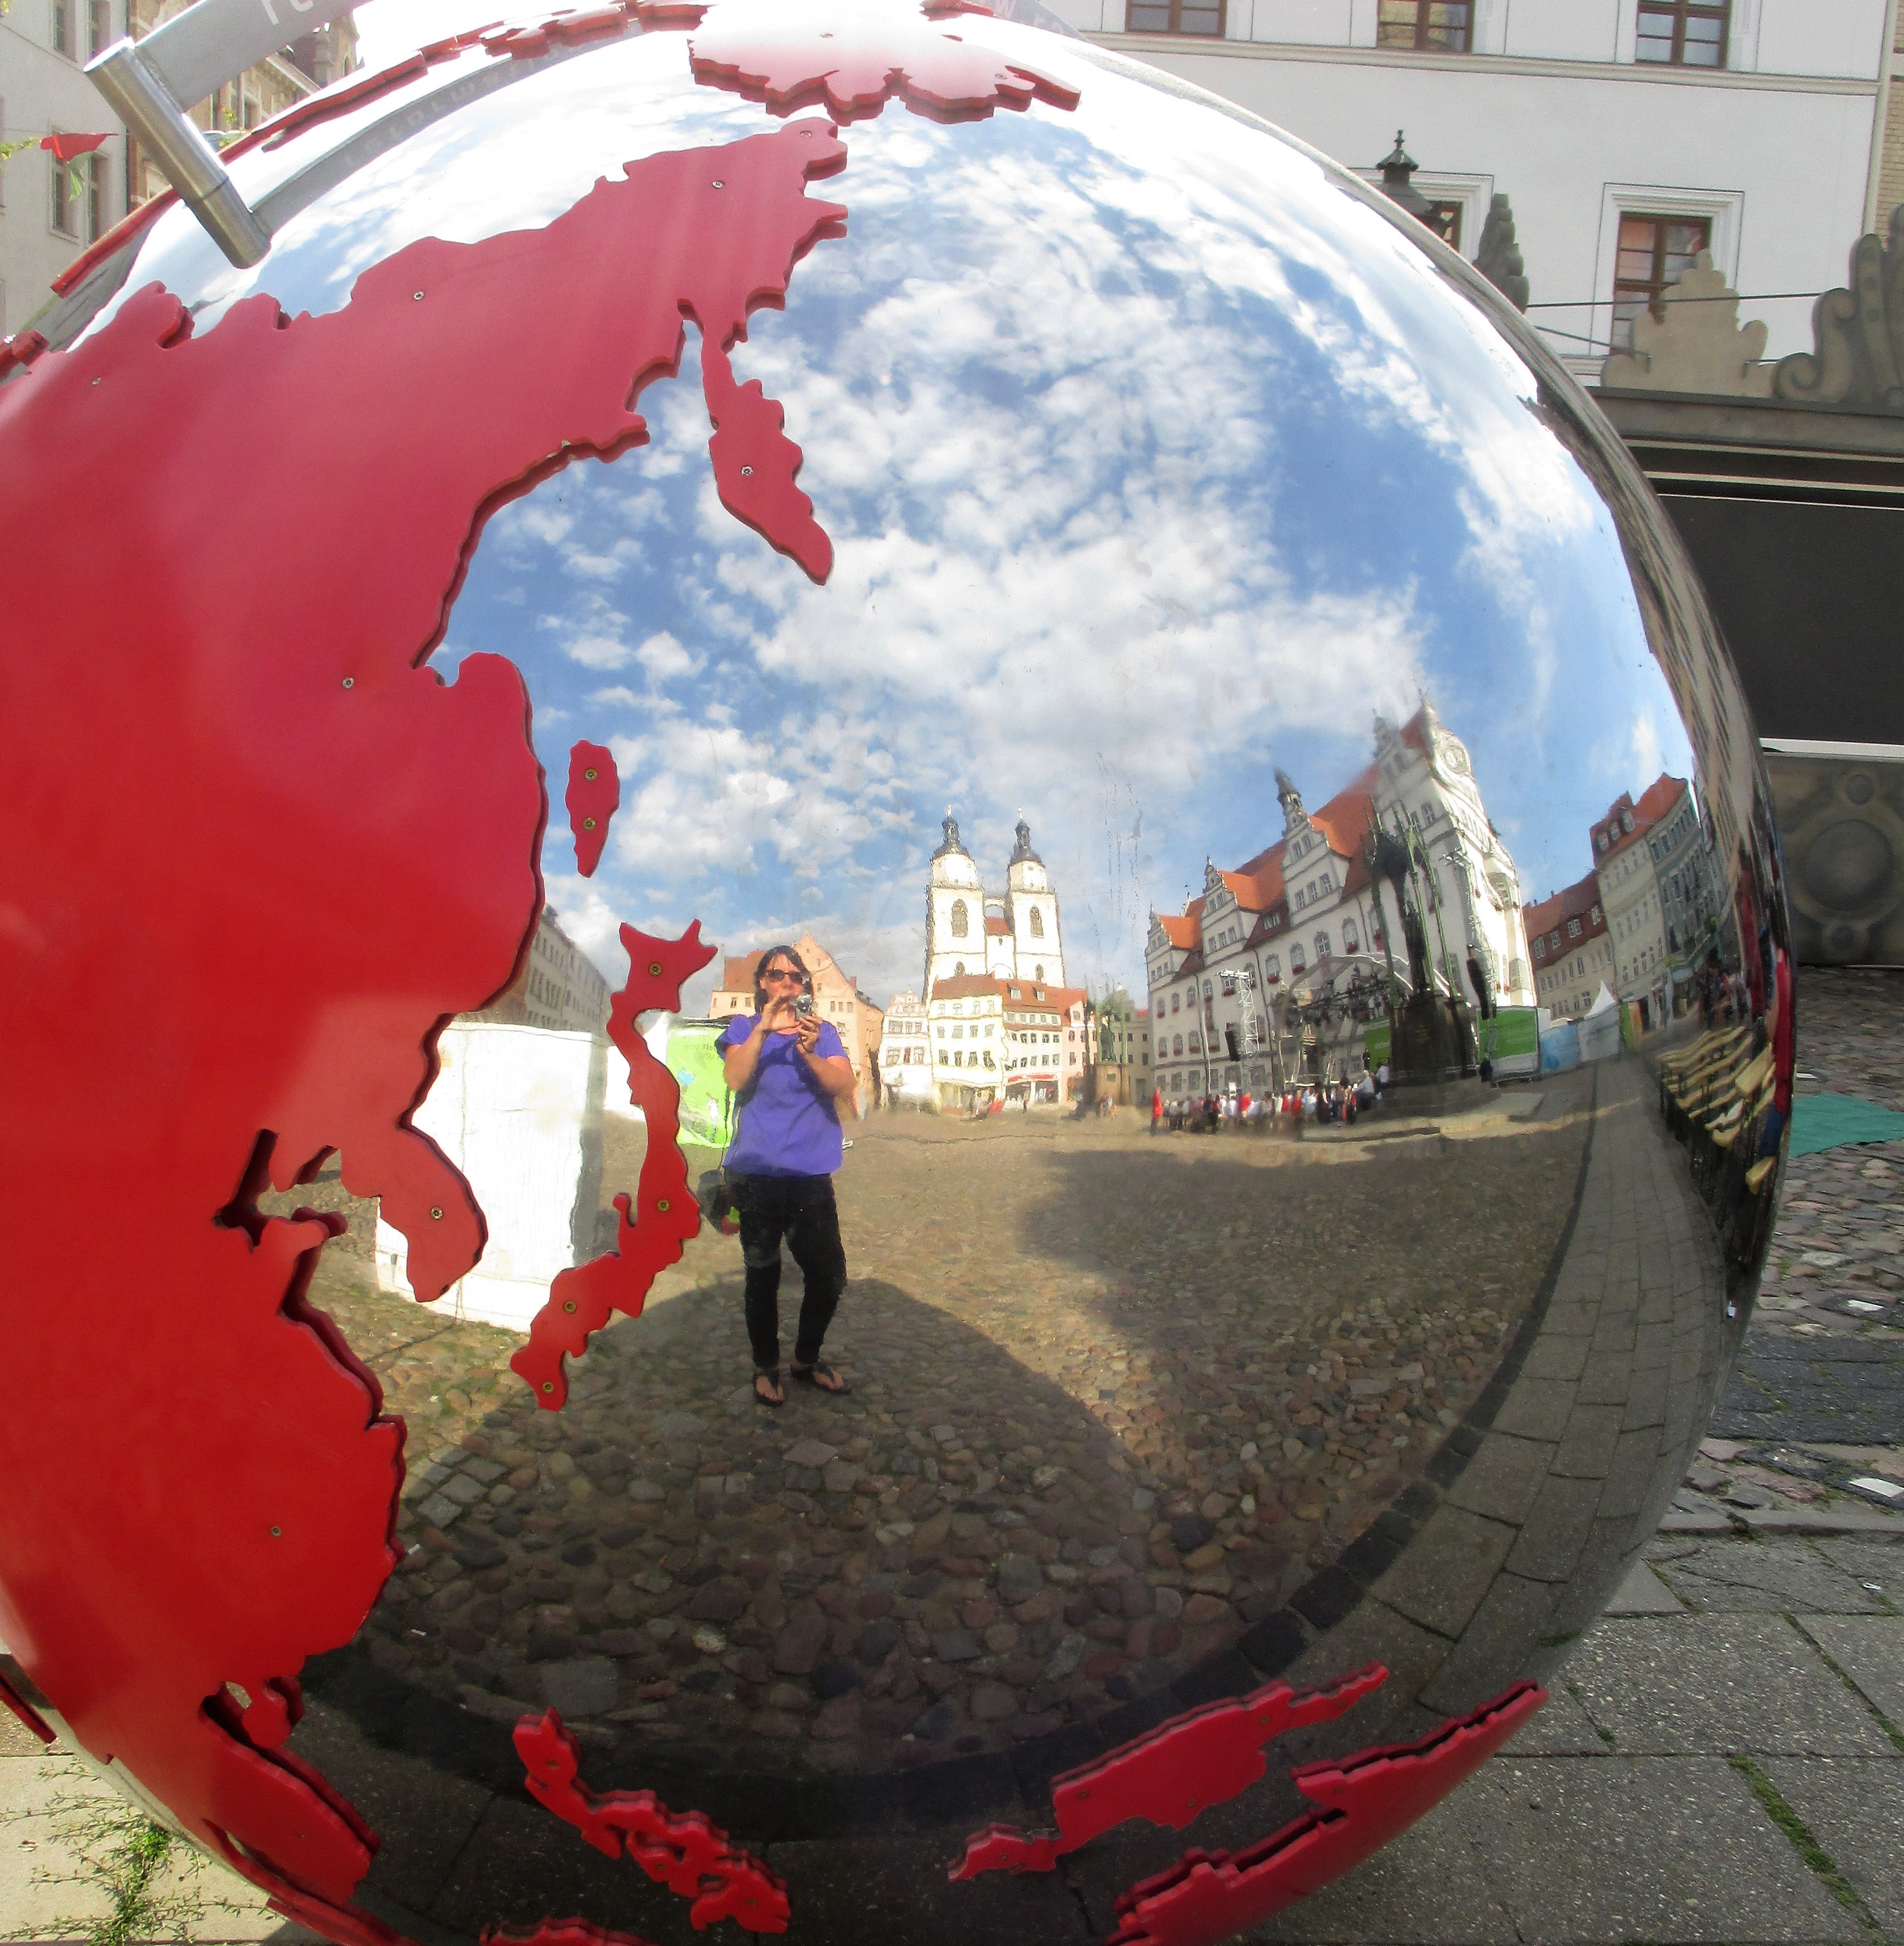 In the Marktplatz, with reflections of the Rathaus and St. Mary's Church.